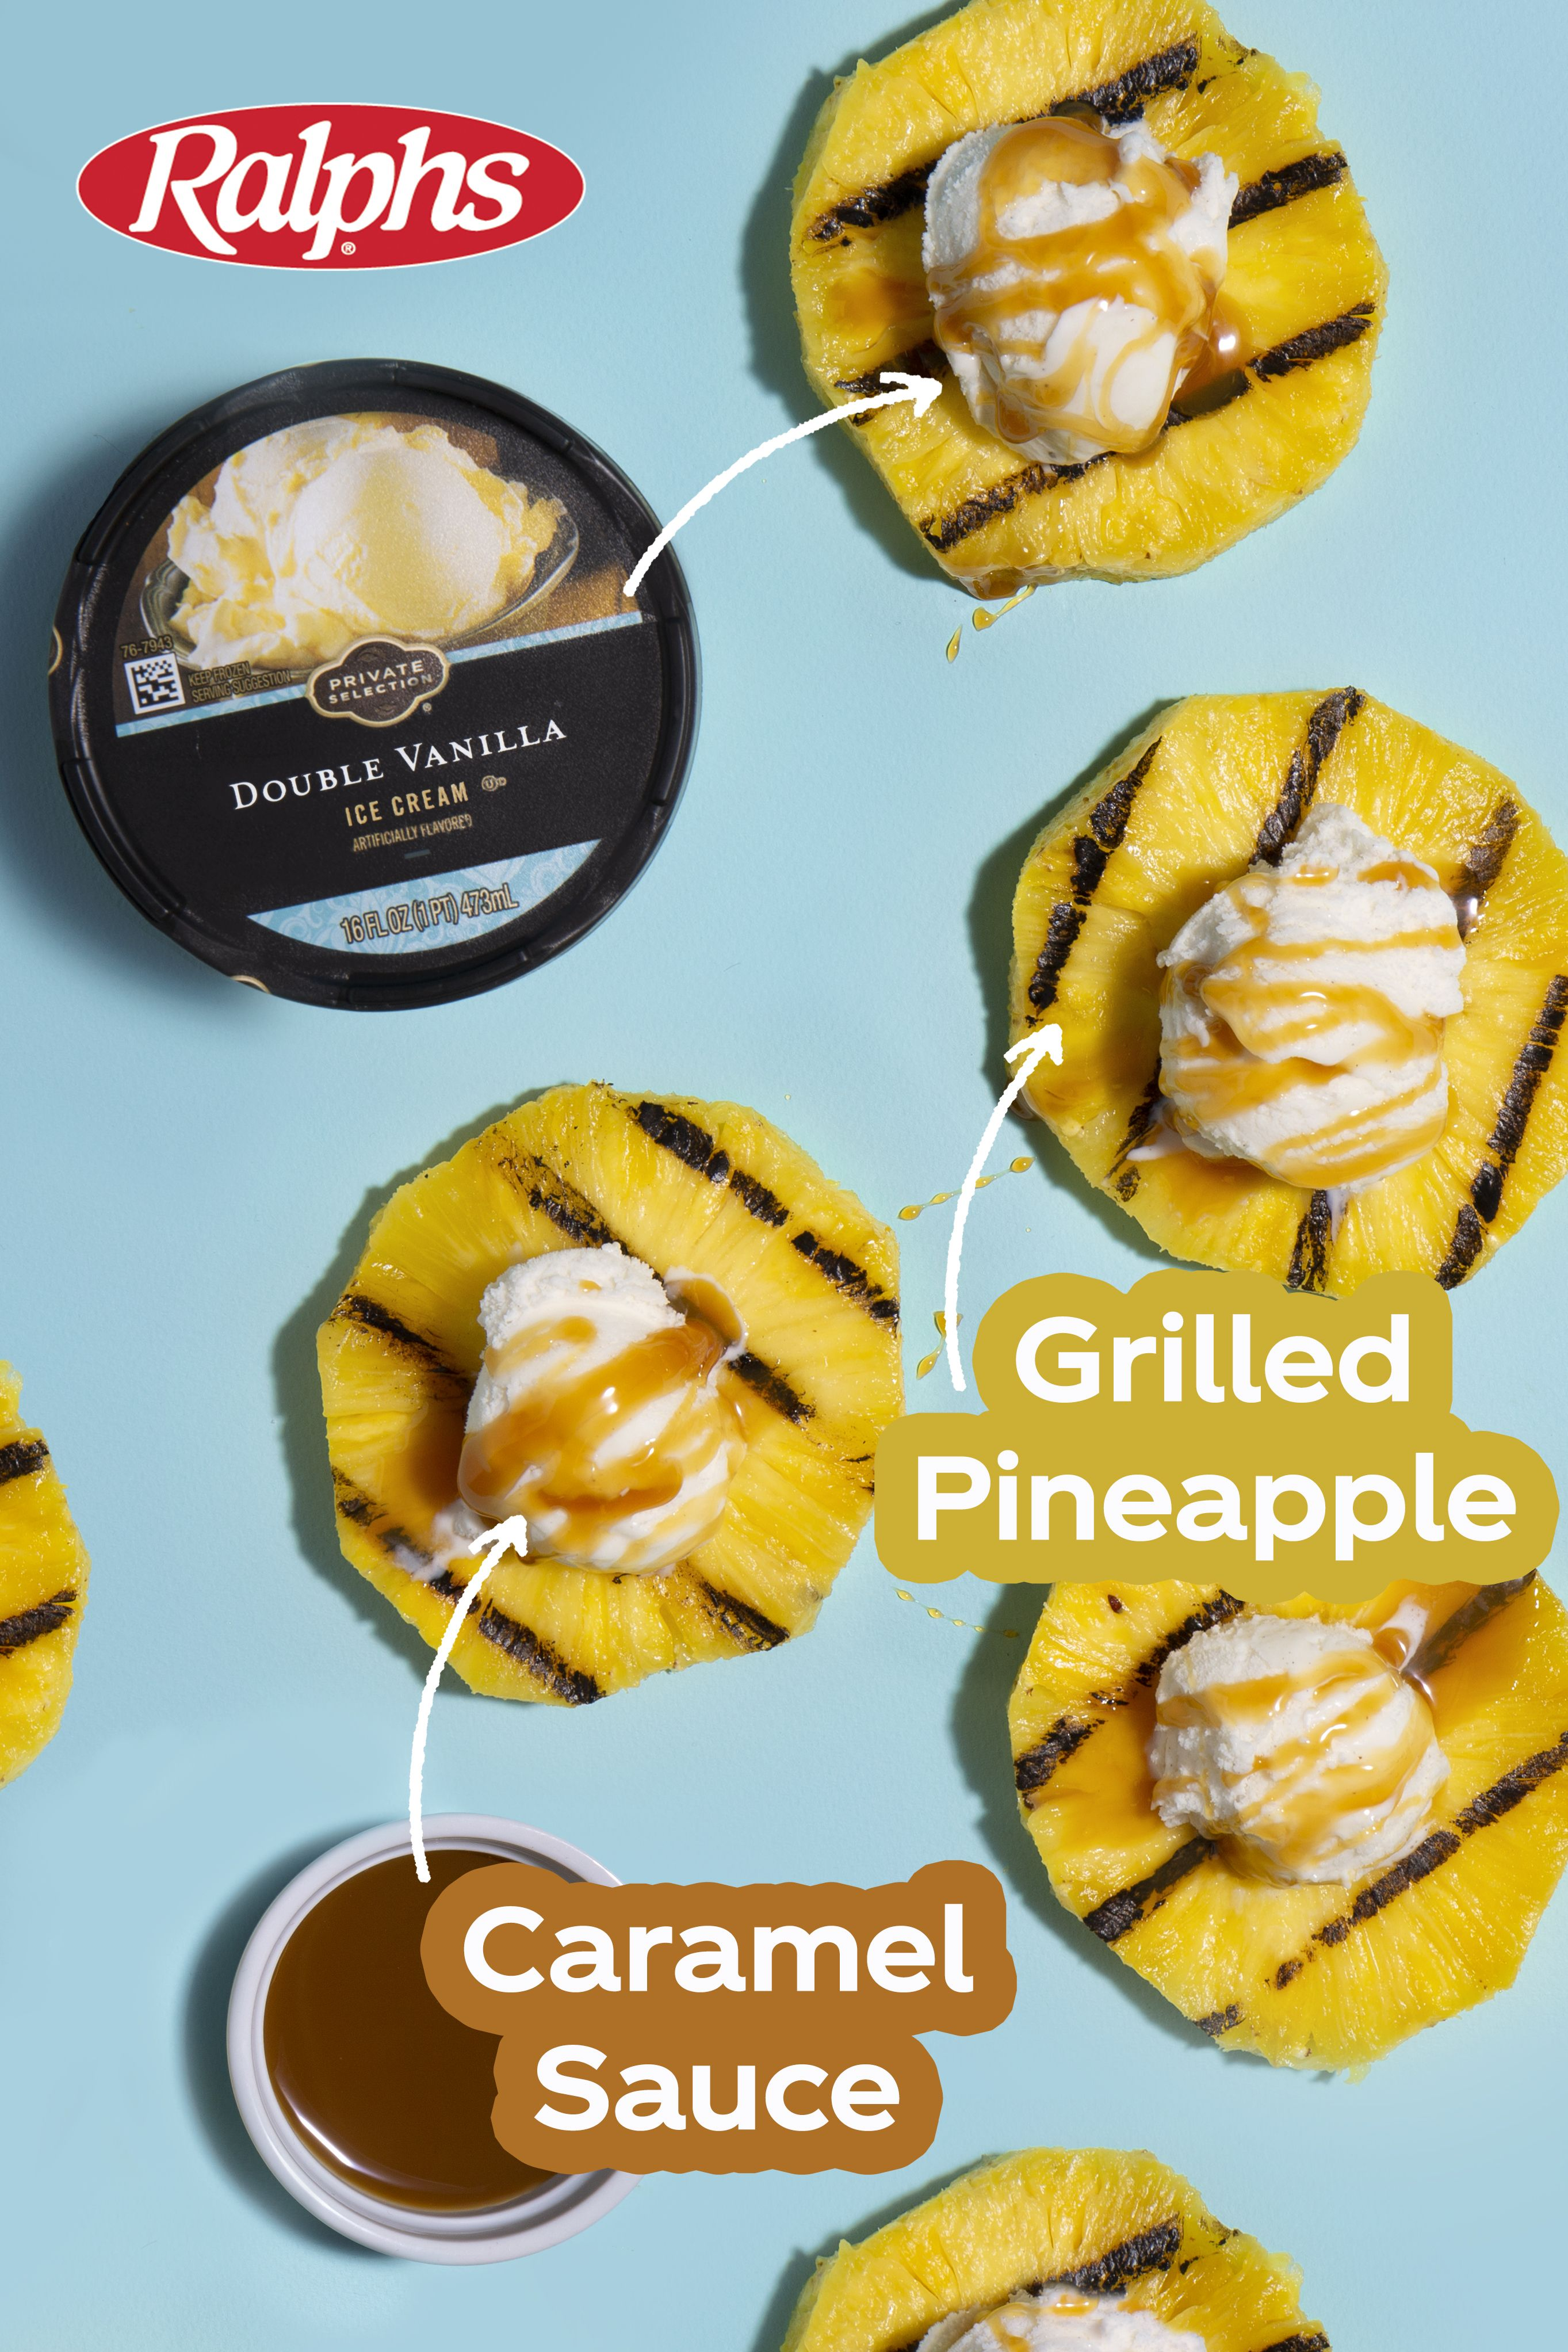 The Freshest Summer Calls For Grilled Pineapple With Ice Cream Caramel Add A Fresh Summer Twist To Summer Grilling Recipes Summer Recipes Light Summer Meals